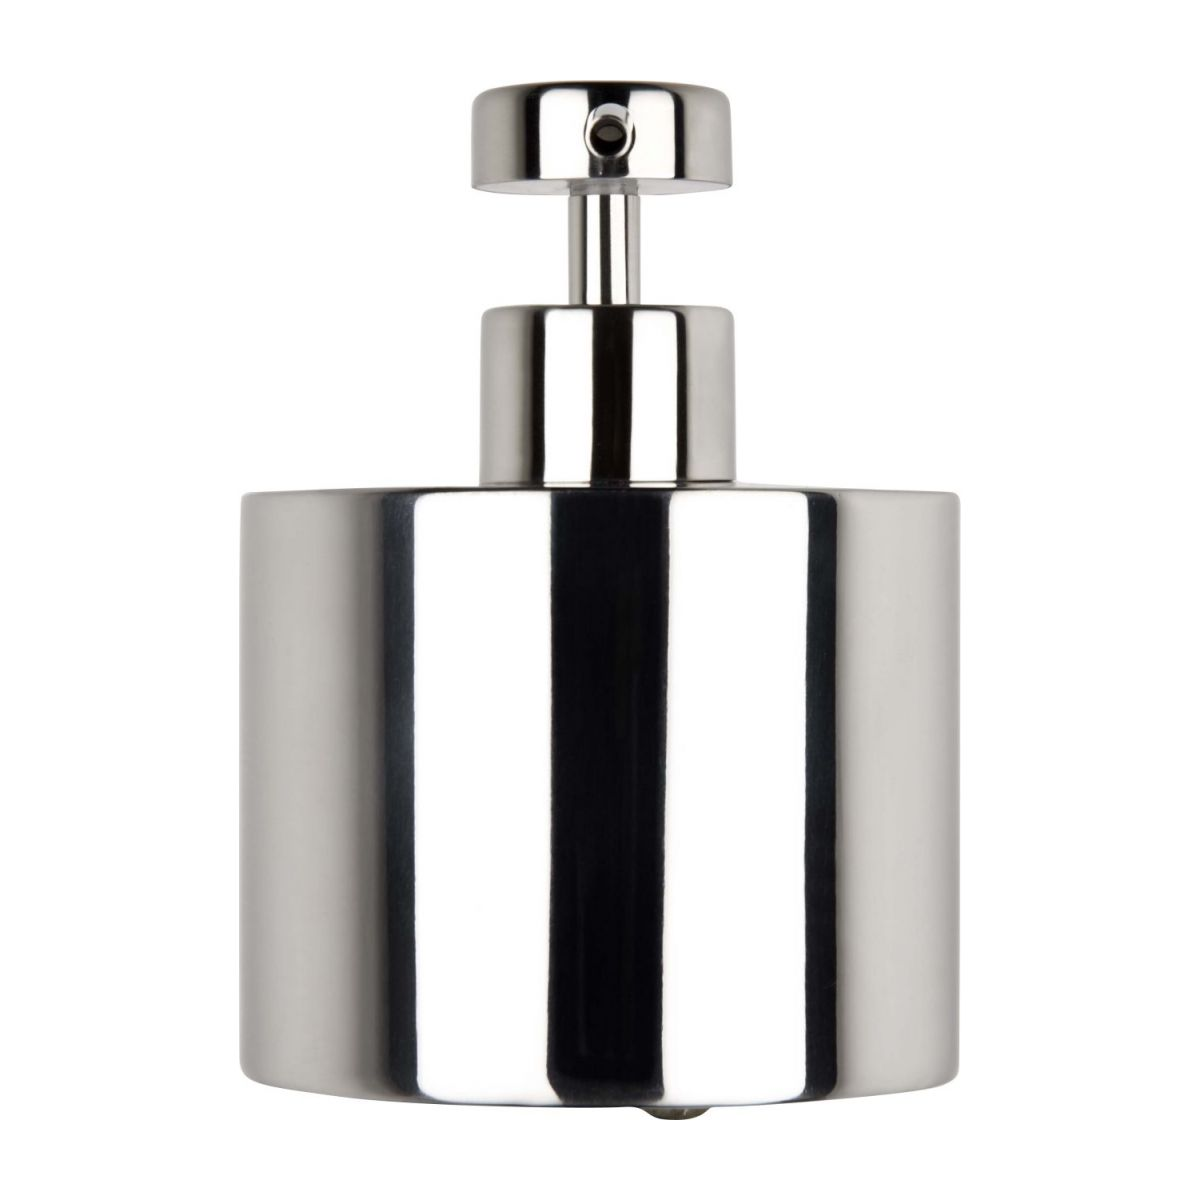 Soap dispenser in stainless steel n°4